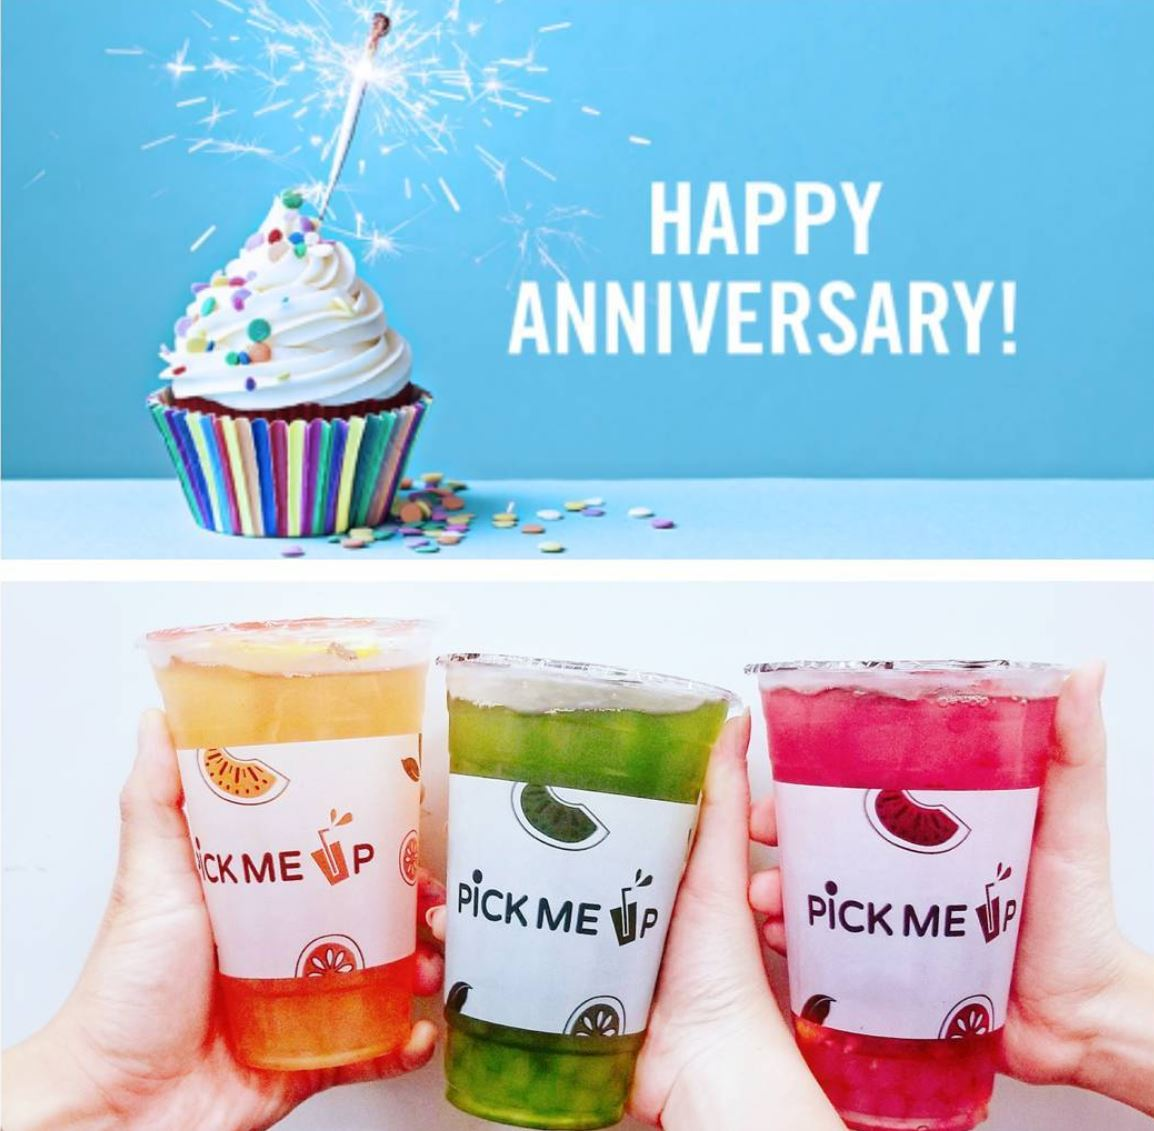 All October | Buy 1 Drink, Get 2nd For Just $1 @ Pick Me  Up Tea House - Garden Grove